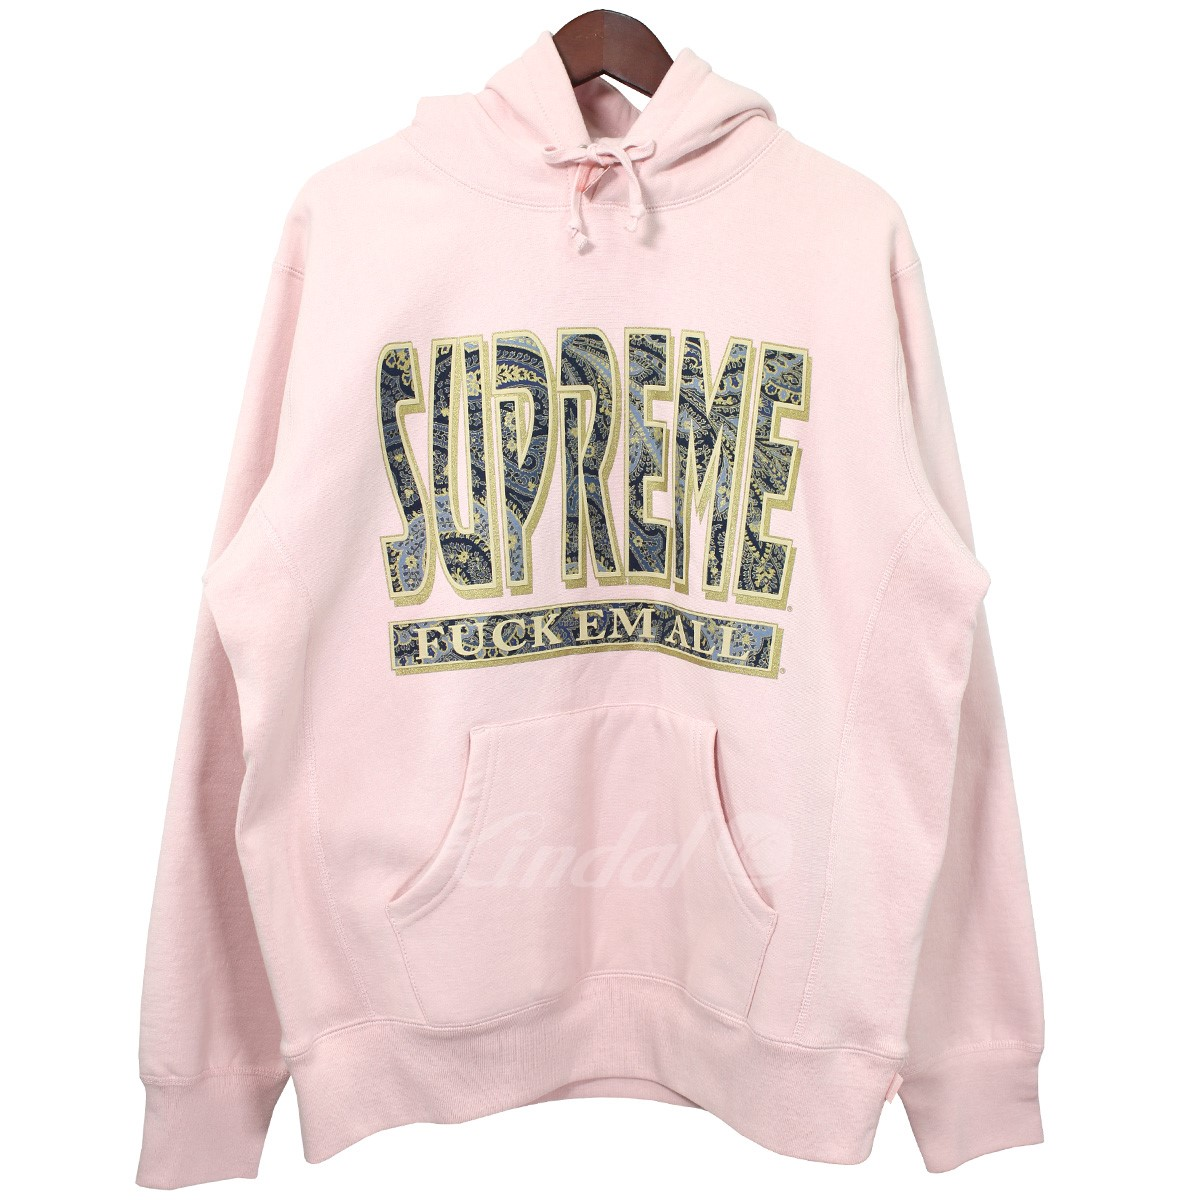 【中古】SUPREME 2017AW Paisley Fuck Em All Hooded Sweatshirt ピーチ サイズ:M 【送料無料】 【041018】(シュプリーム)